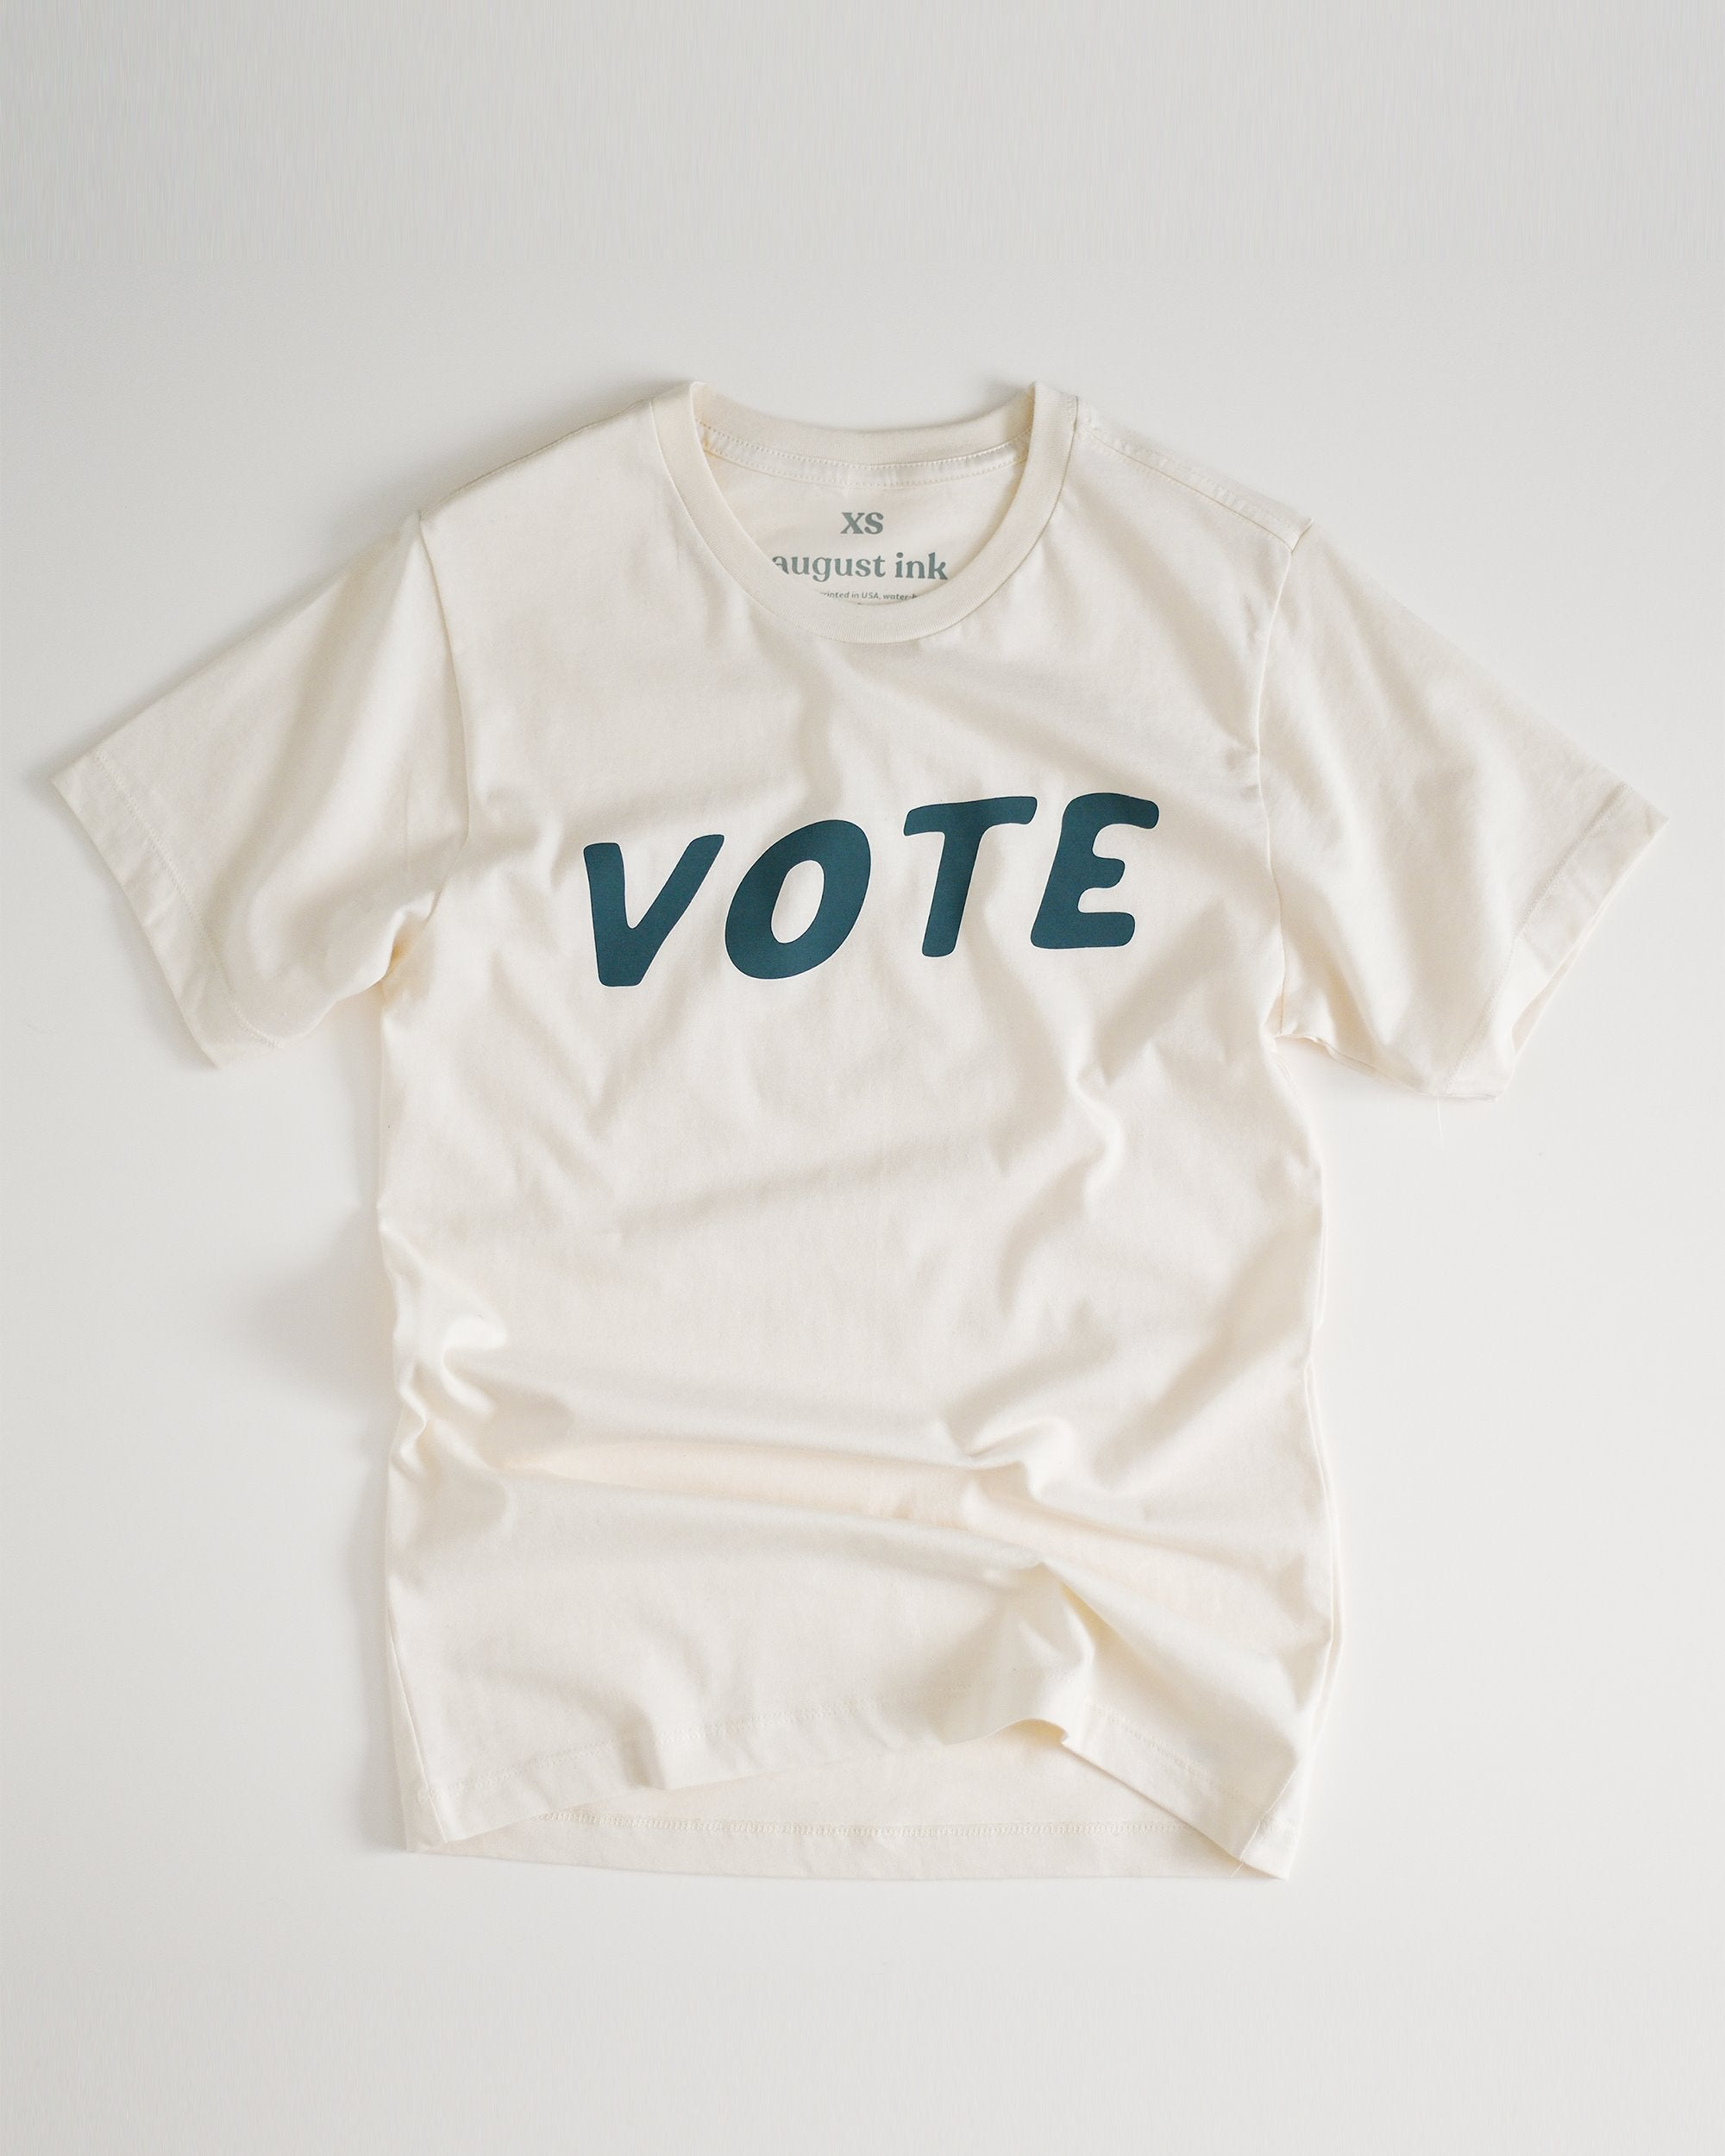 Vote Unisex Tee womens August Ink